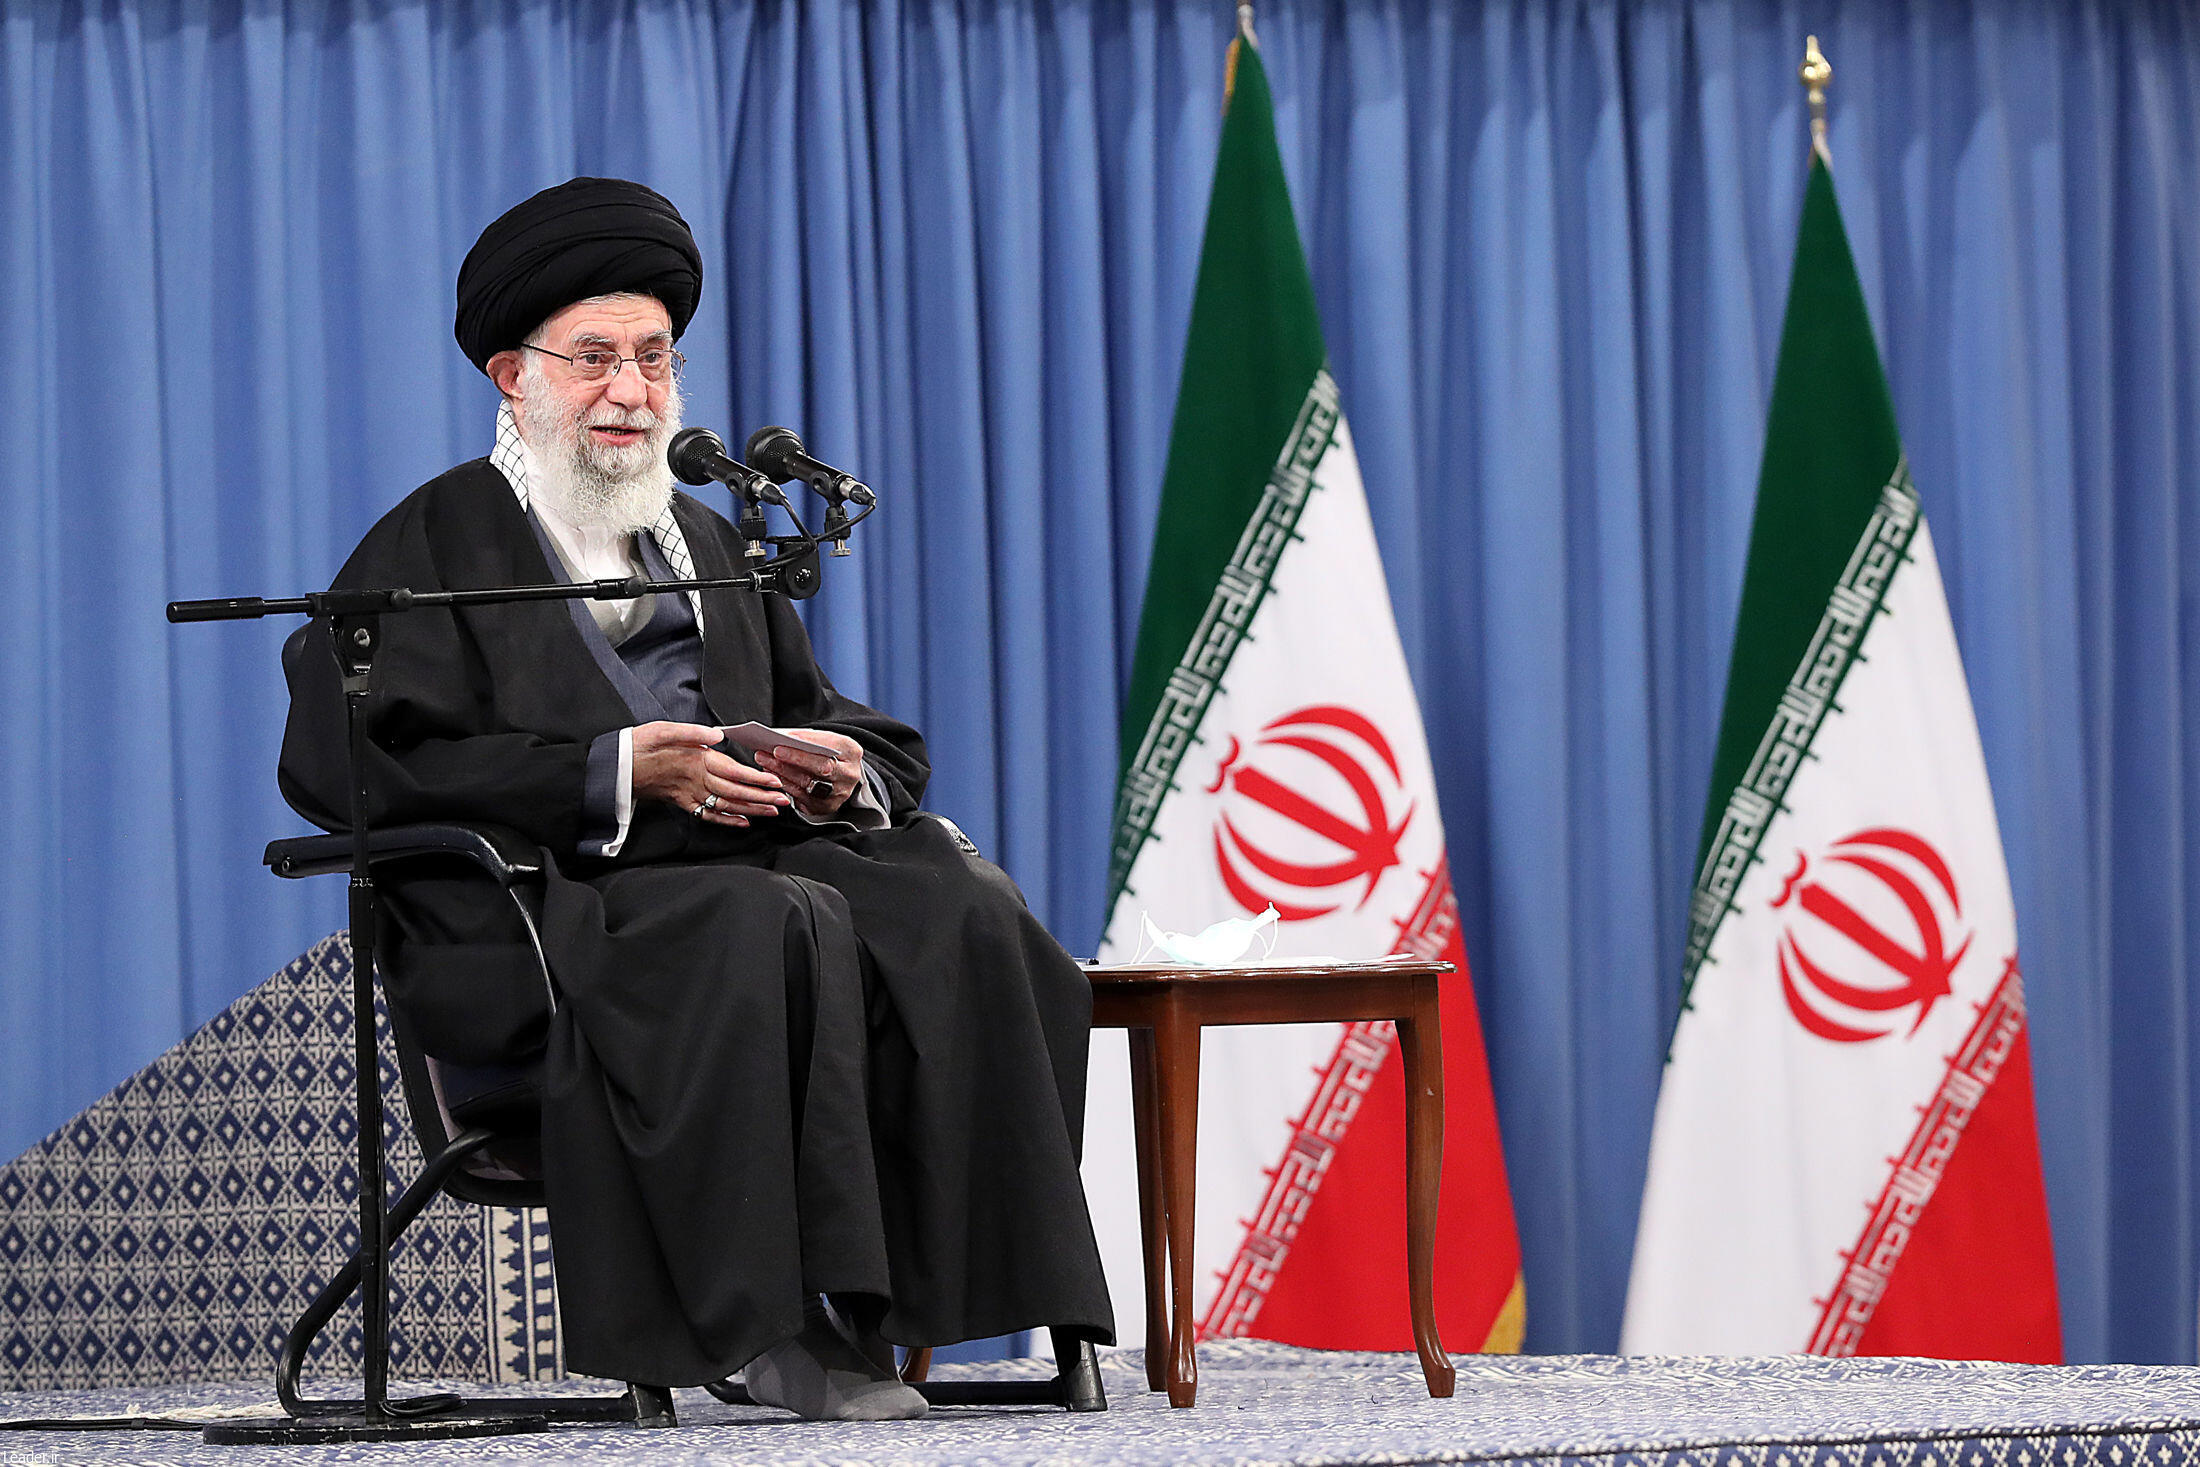 Iran's supreme leader Ayatollah Ali Khamenei has insisted that Tehran will not resume nuclear commitments until the US completely lifts sanctions imposed on the Islamic republic